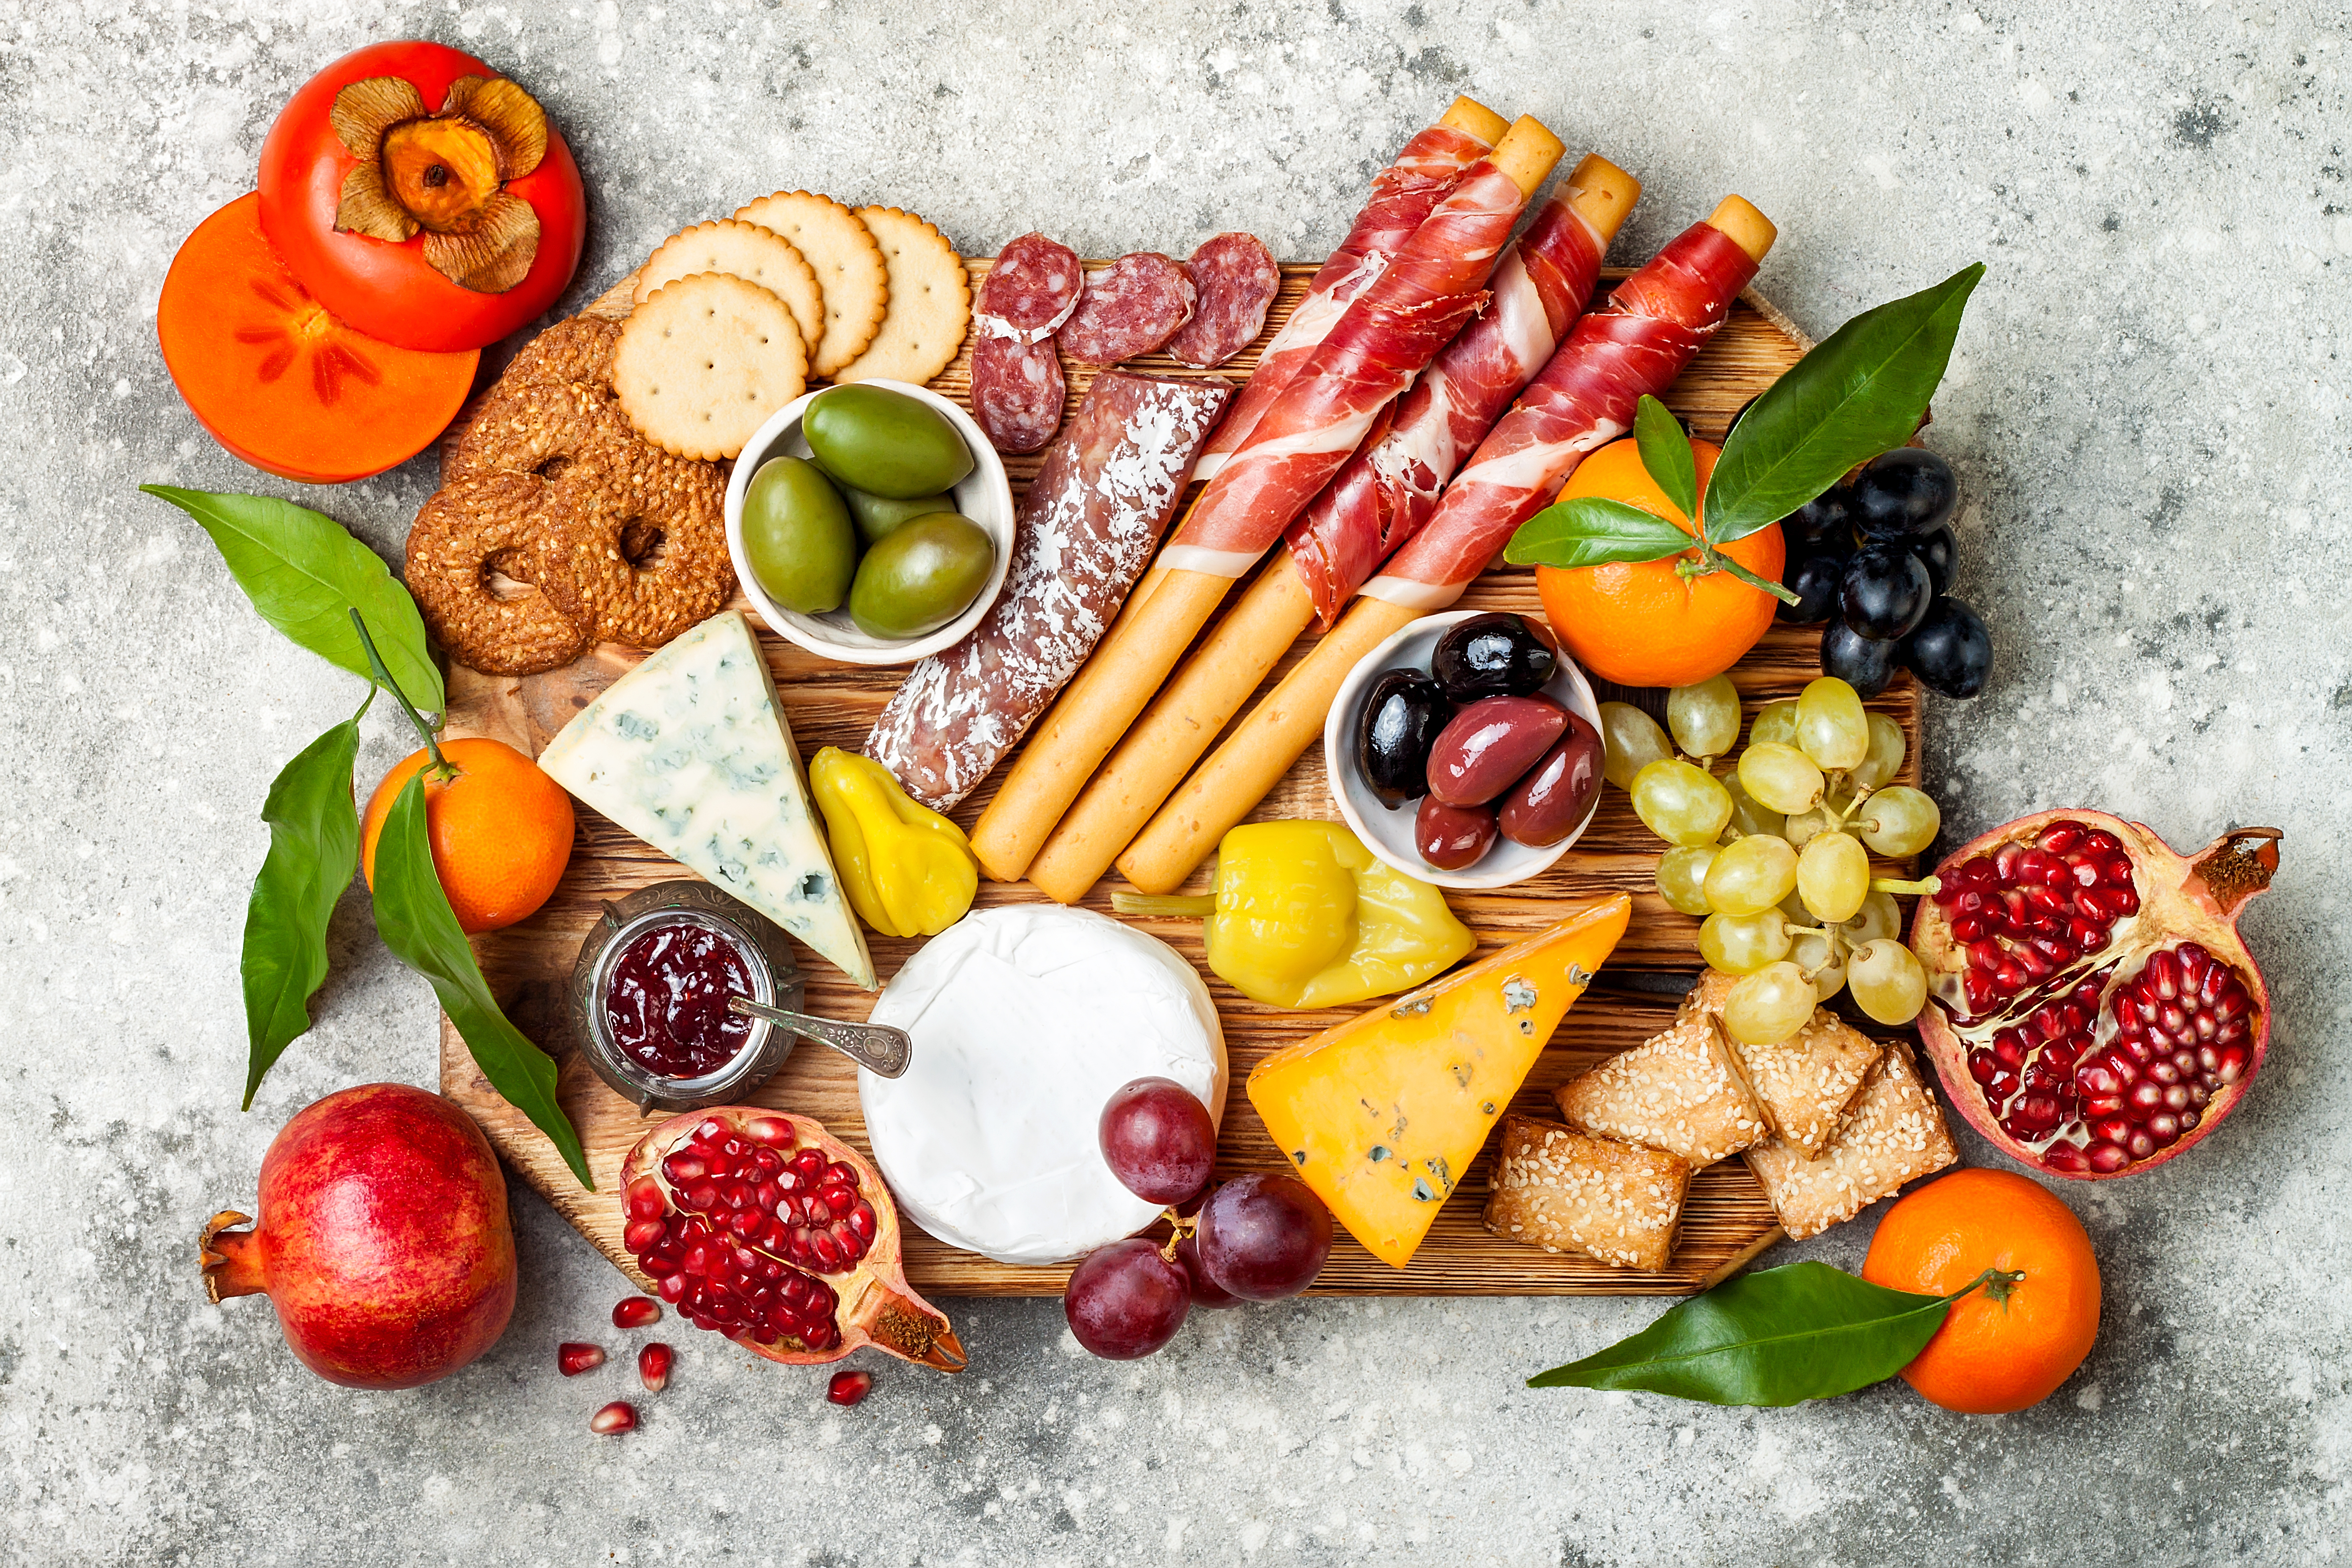 Picture Perfect CheeseBoards